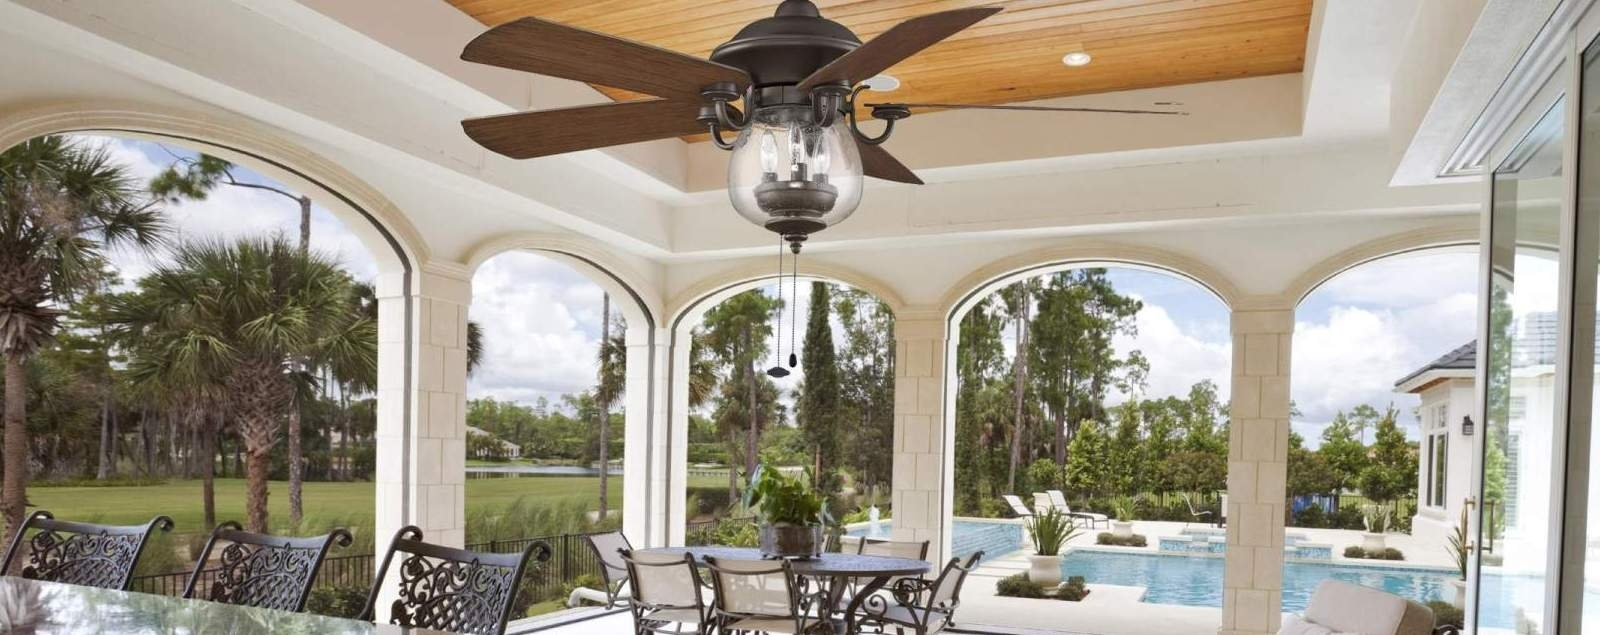 Rust Proof Outdoor Ceiling Fans With Best And Newest Outdoor Ceiling Fans – Shop Wet, Dry, And Damp Rated Outdoor Fans (Gallery 6 of 20)